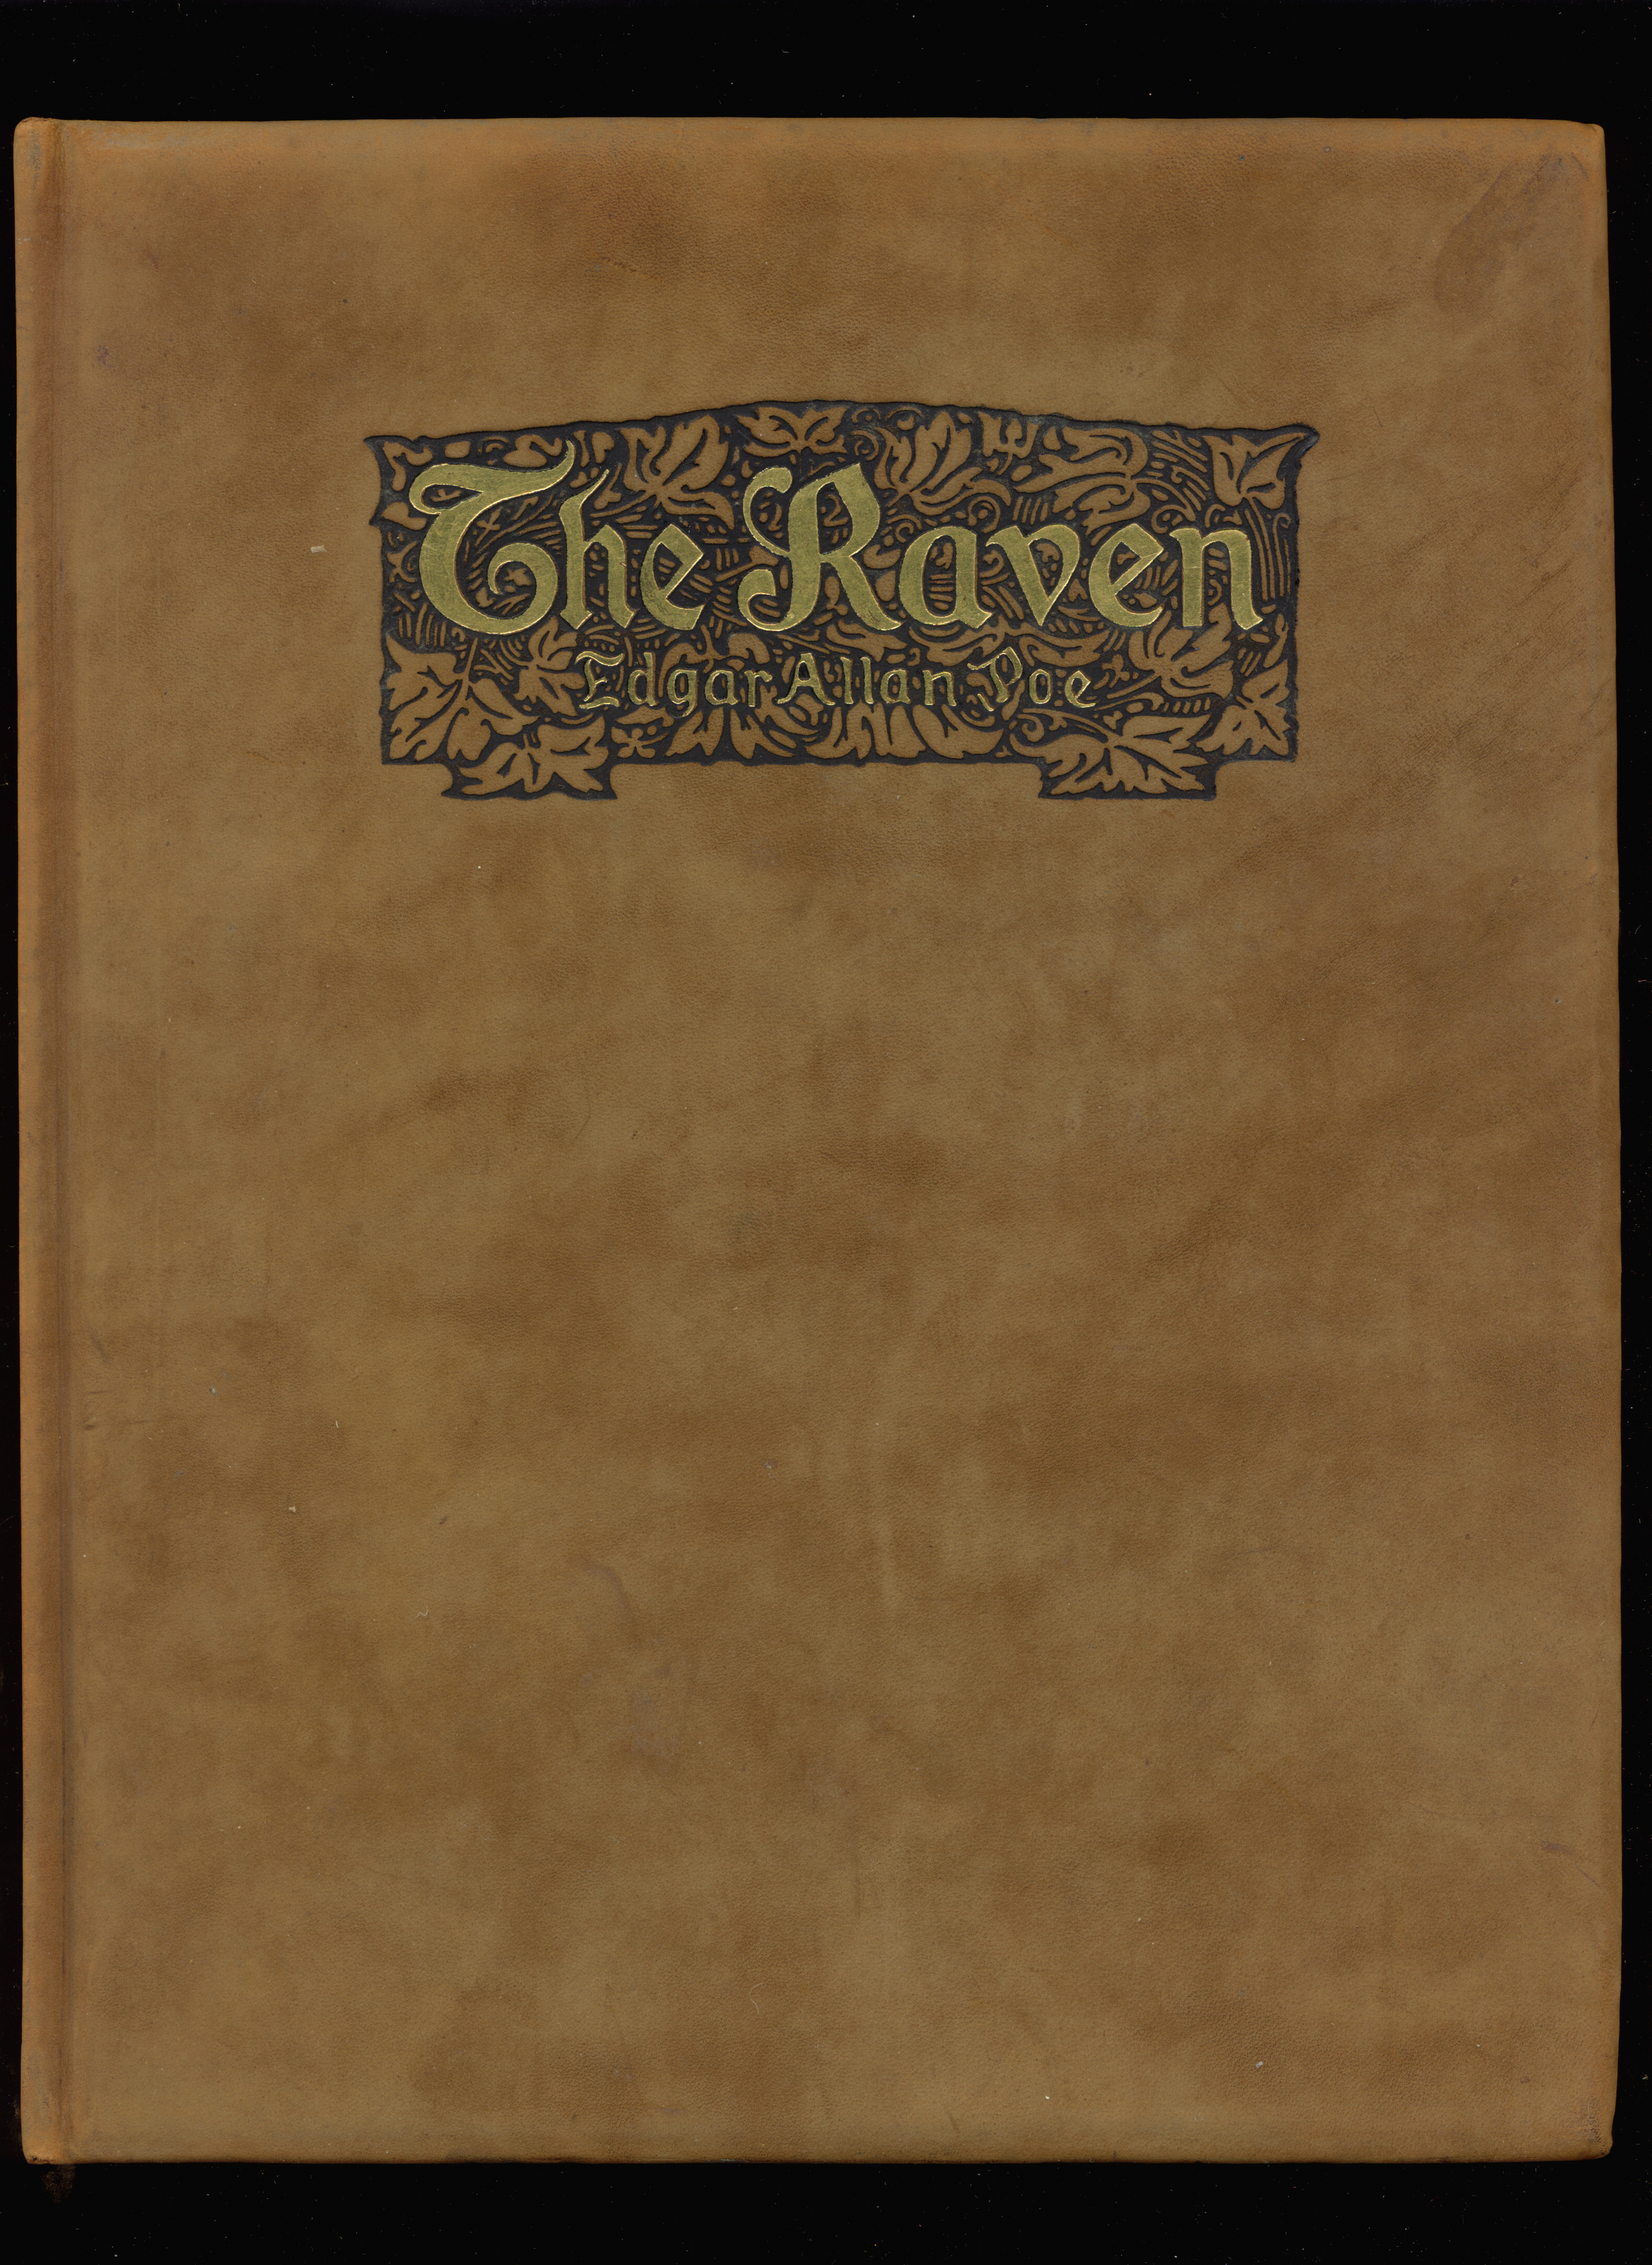 paul elder co the raven  fancy suede binding of the raven